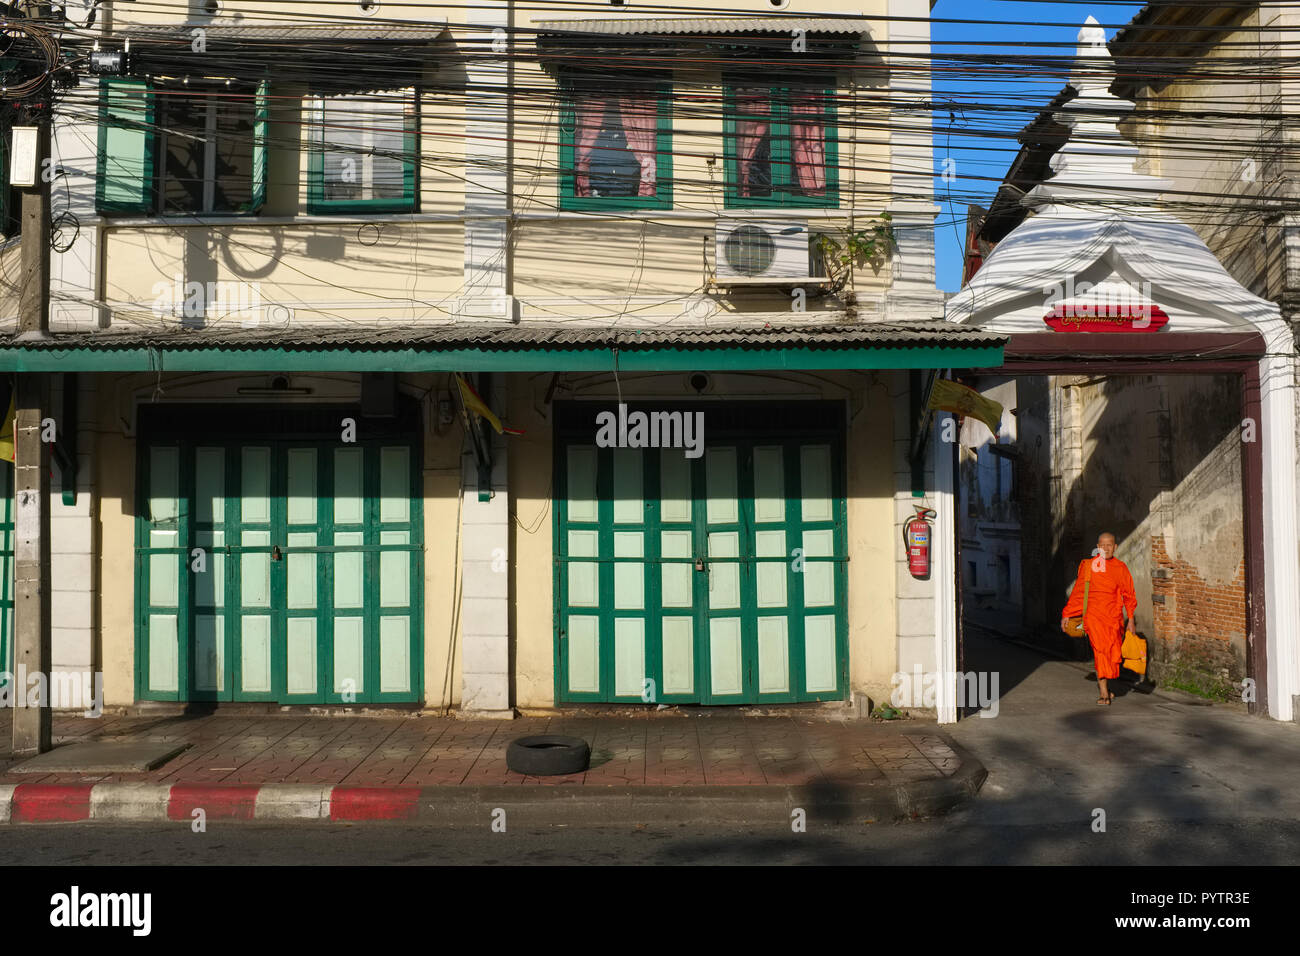 A Buddhist monk leaving the grounds of Wat Suthat, Bangkok, Thailand, for Dinso Rd., lined with old Chinese shophouses - Stock Image